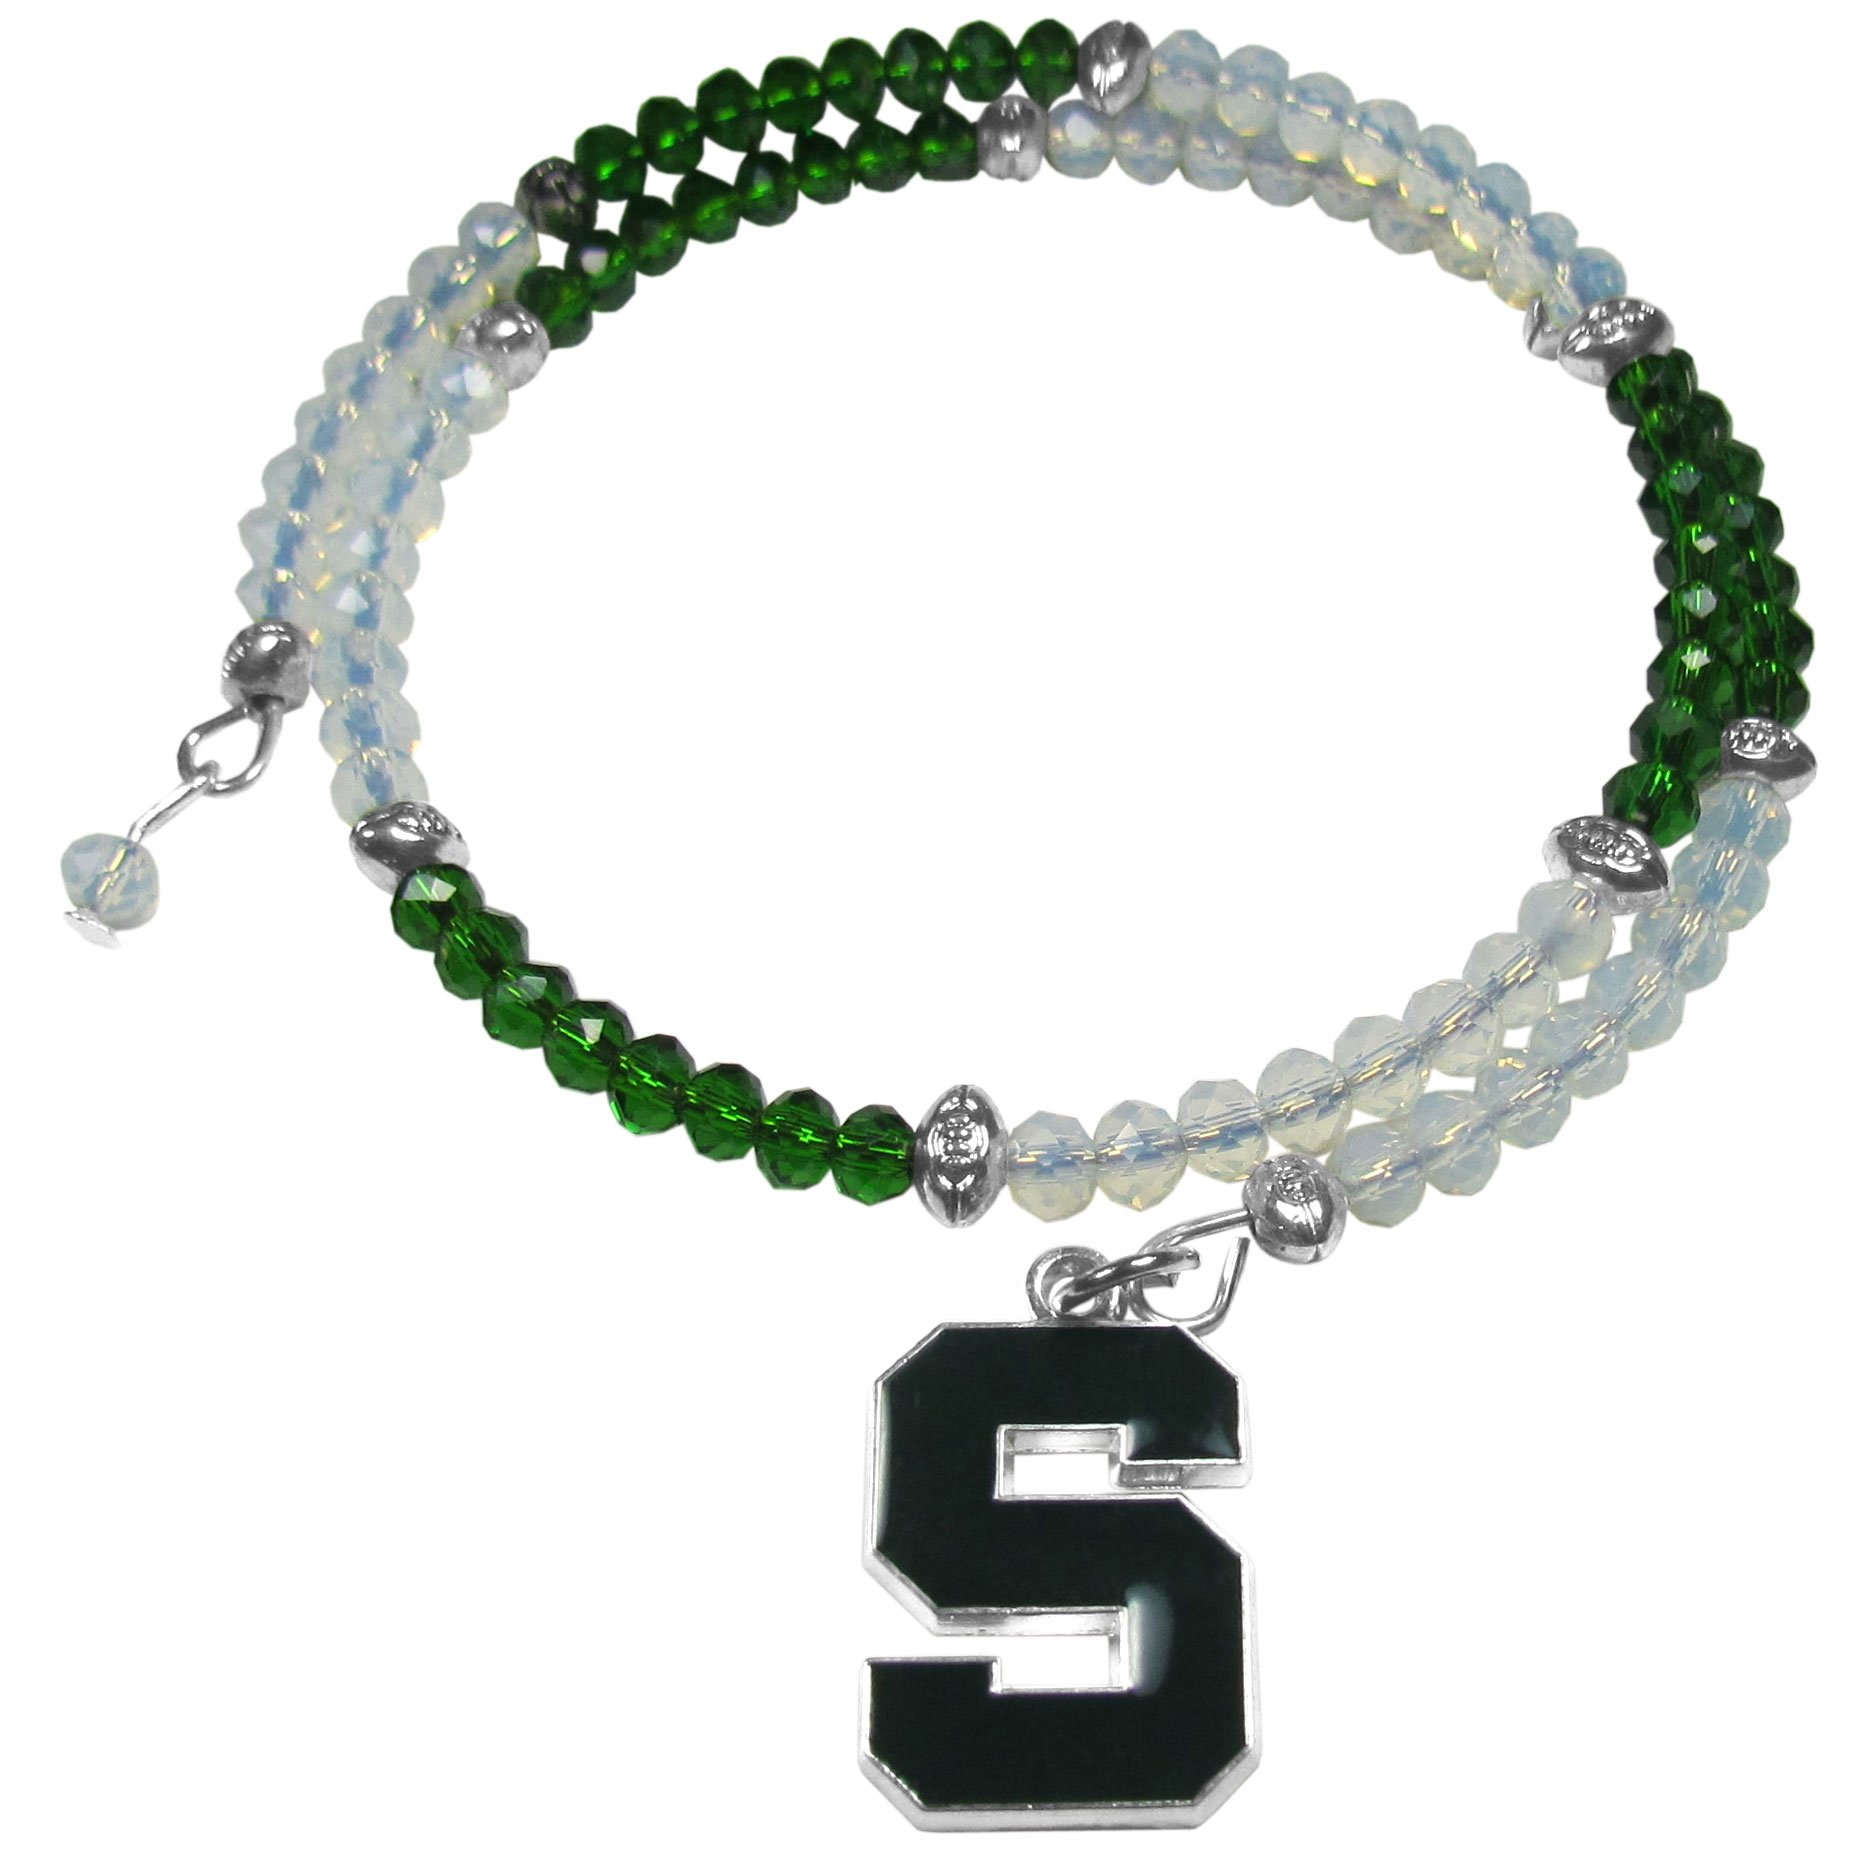 Michigan St. Spartans Crystal Memory Wire Bracelet - Our Michigan St. Spartans memory wire crystal bracelet is trendy way to show off your love of the game. The double wrap bracelet is completely covered in 4 mm crystals that are broken up with adorable football beads creating a designer look with a sporty twist. The bracelet features a fully cast, metal team charm that has expertly enameled team colors. This fashion jewelry piece is a must-have for the die-hard fan that chic look that can dress up any outfit.